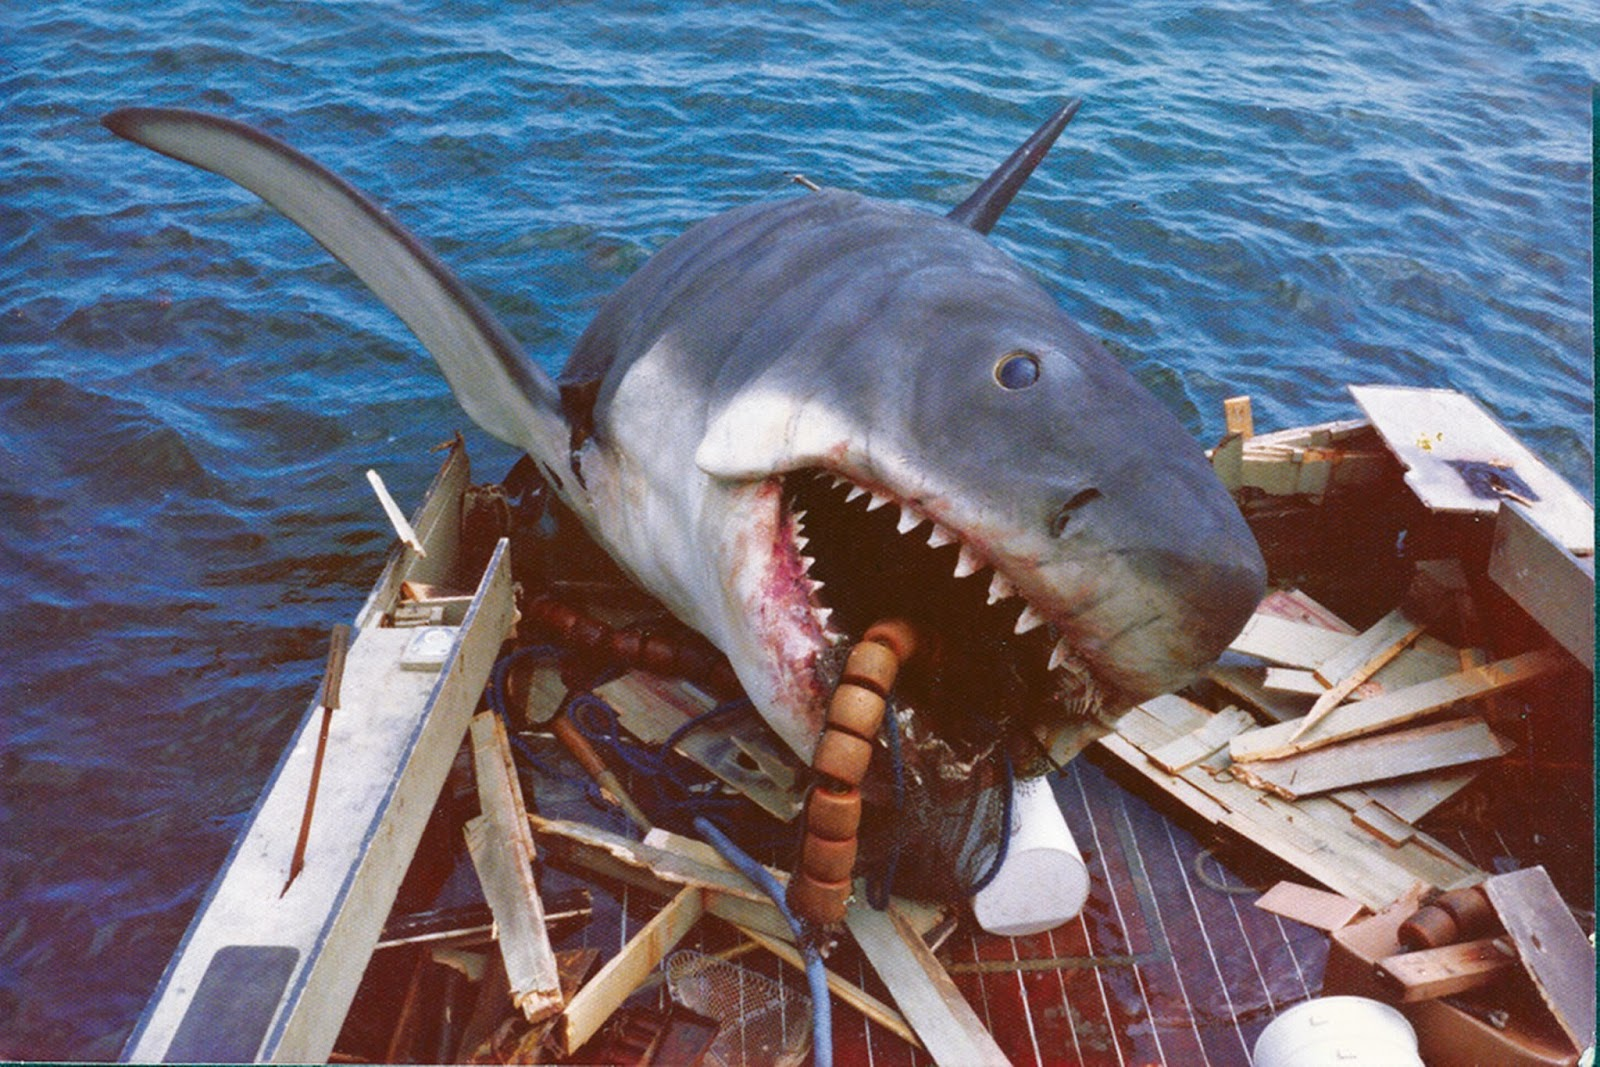 ghmmggsphqy 27 Things You Didn't Know About Jaws